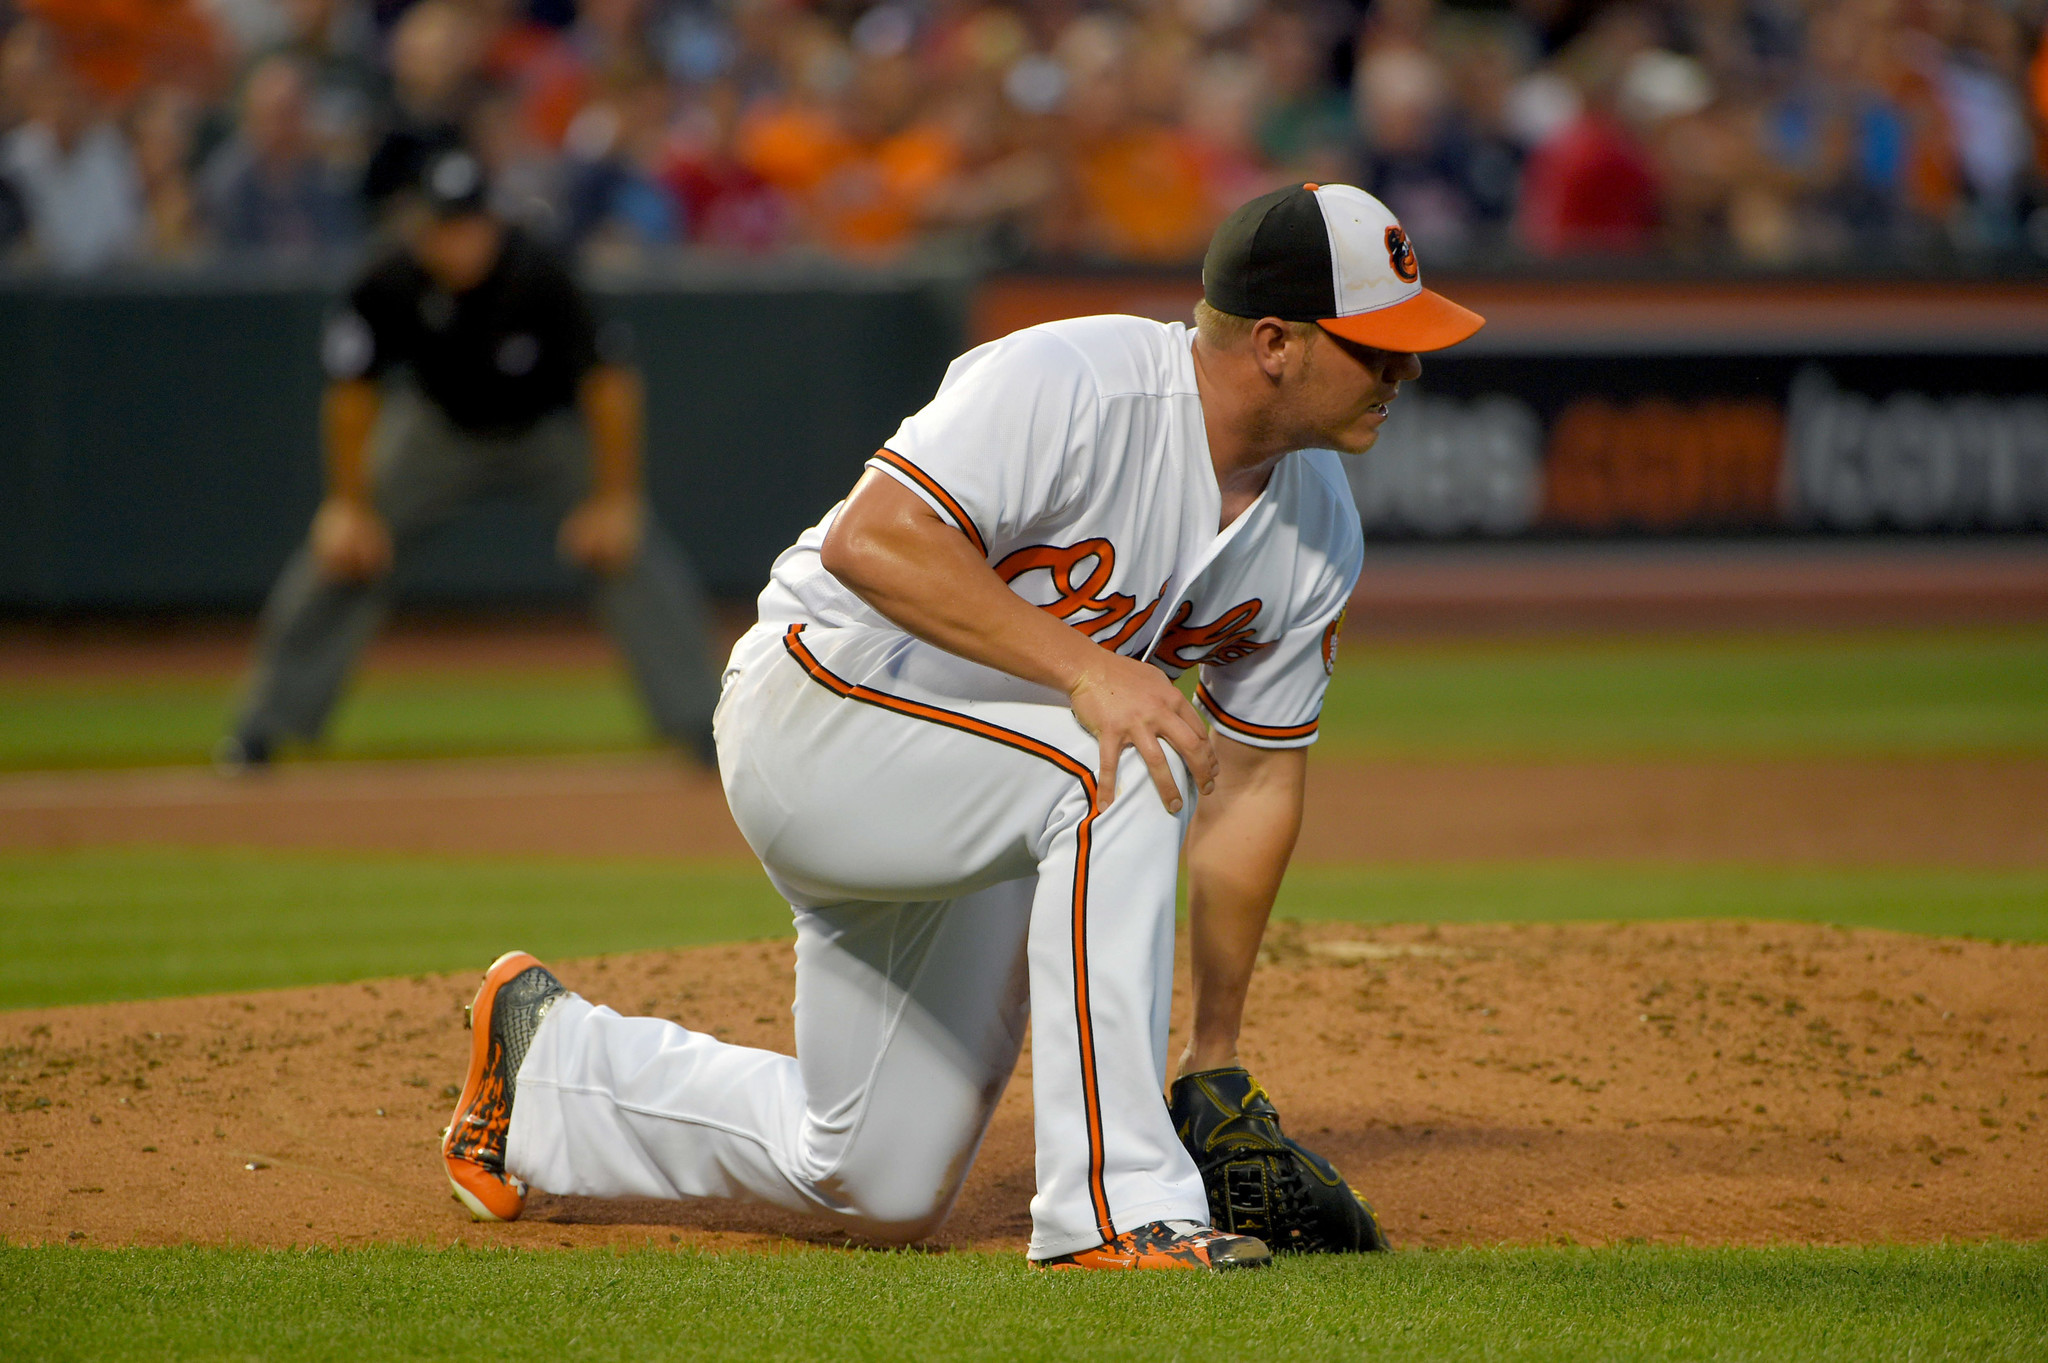 Bal-orioles-turn-to-young-stars-dylan-bundy-kevin-gausman-to-save-important-weekend-in-new-york-20160827